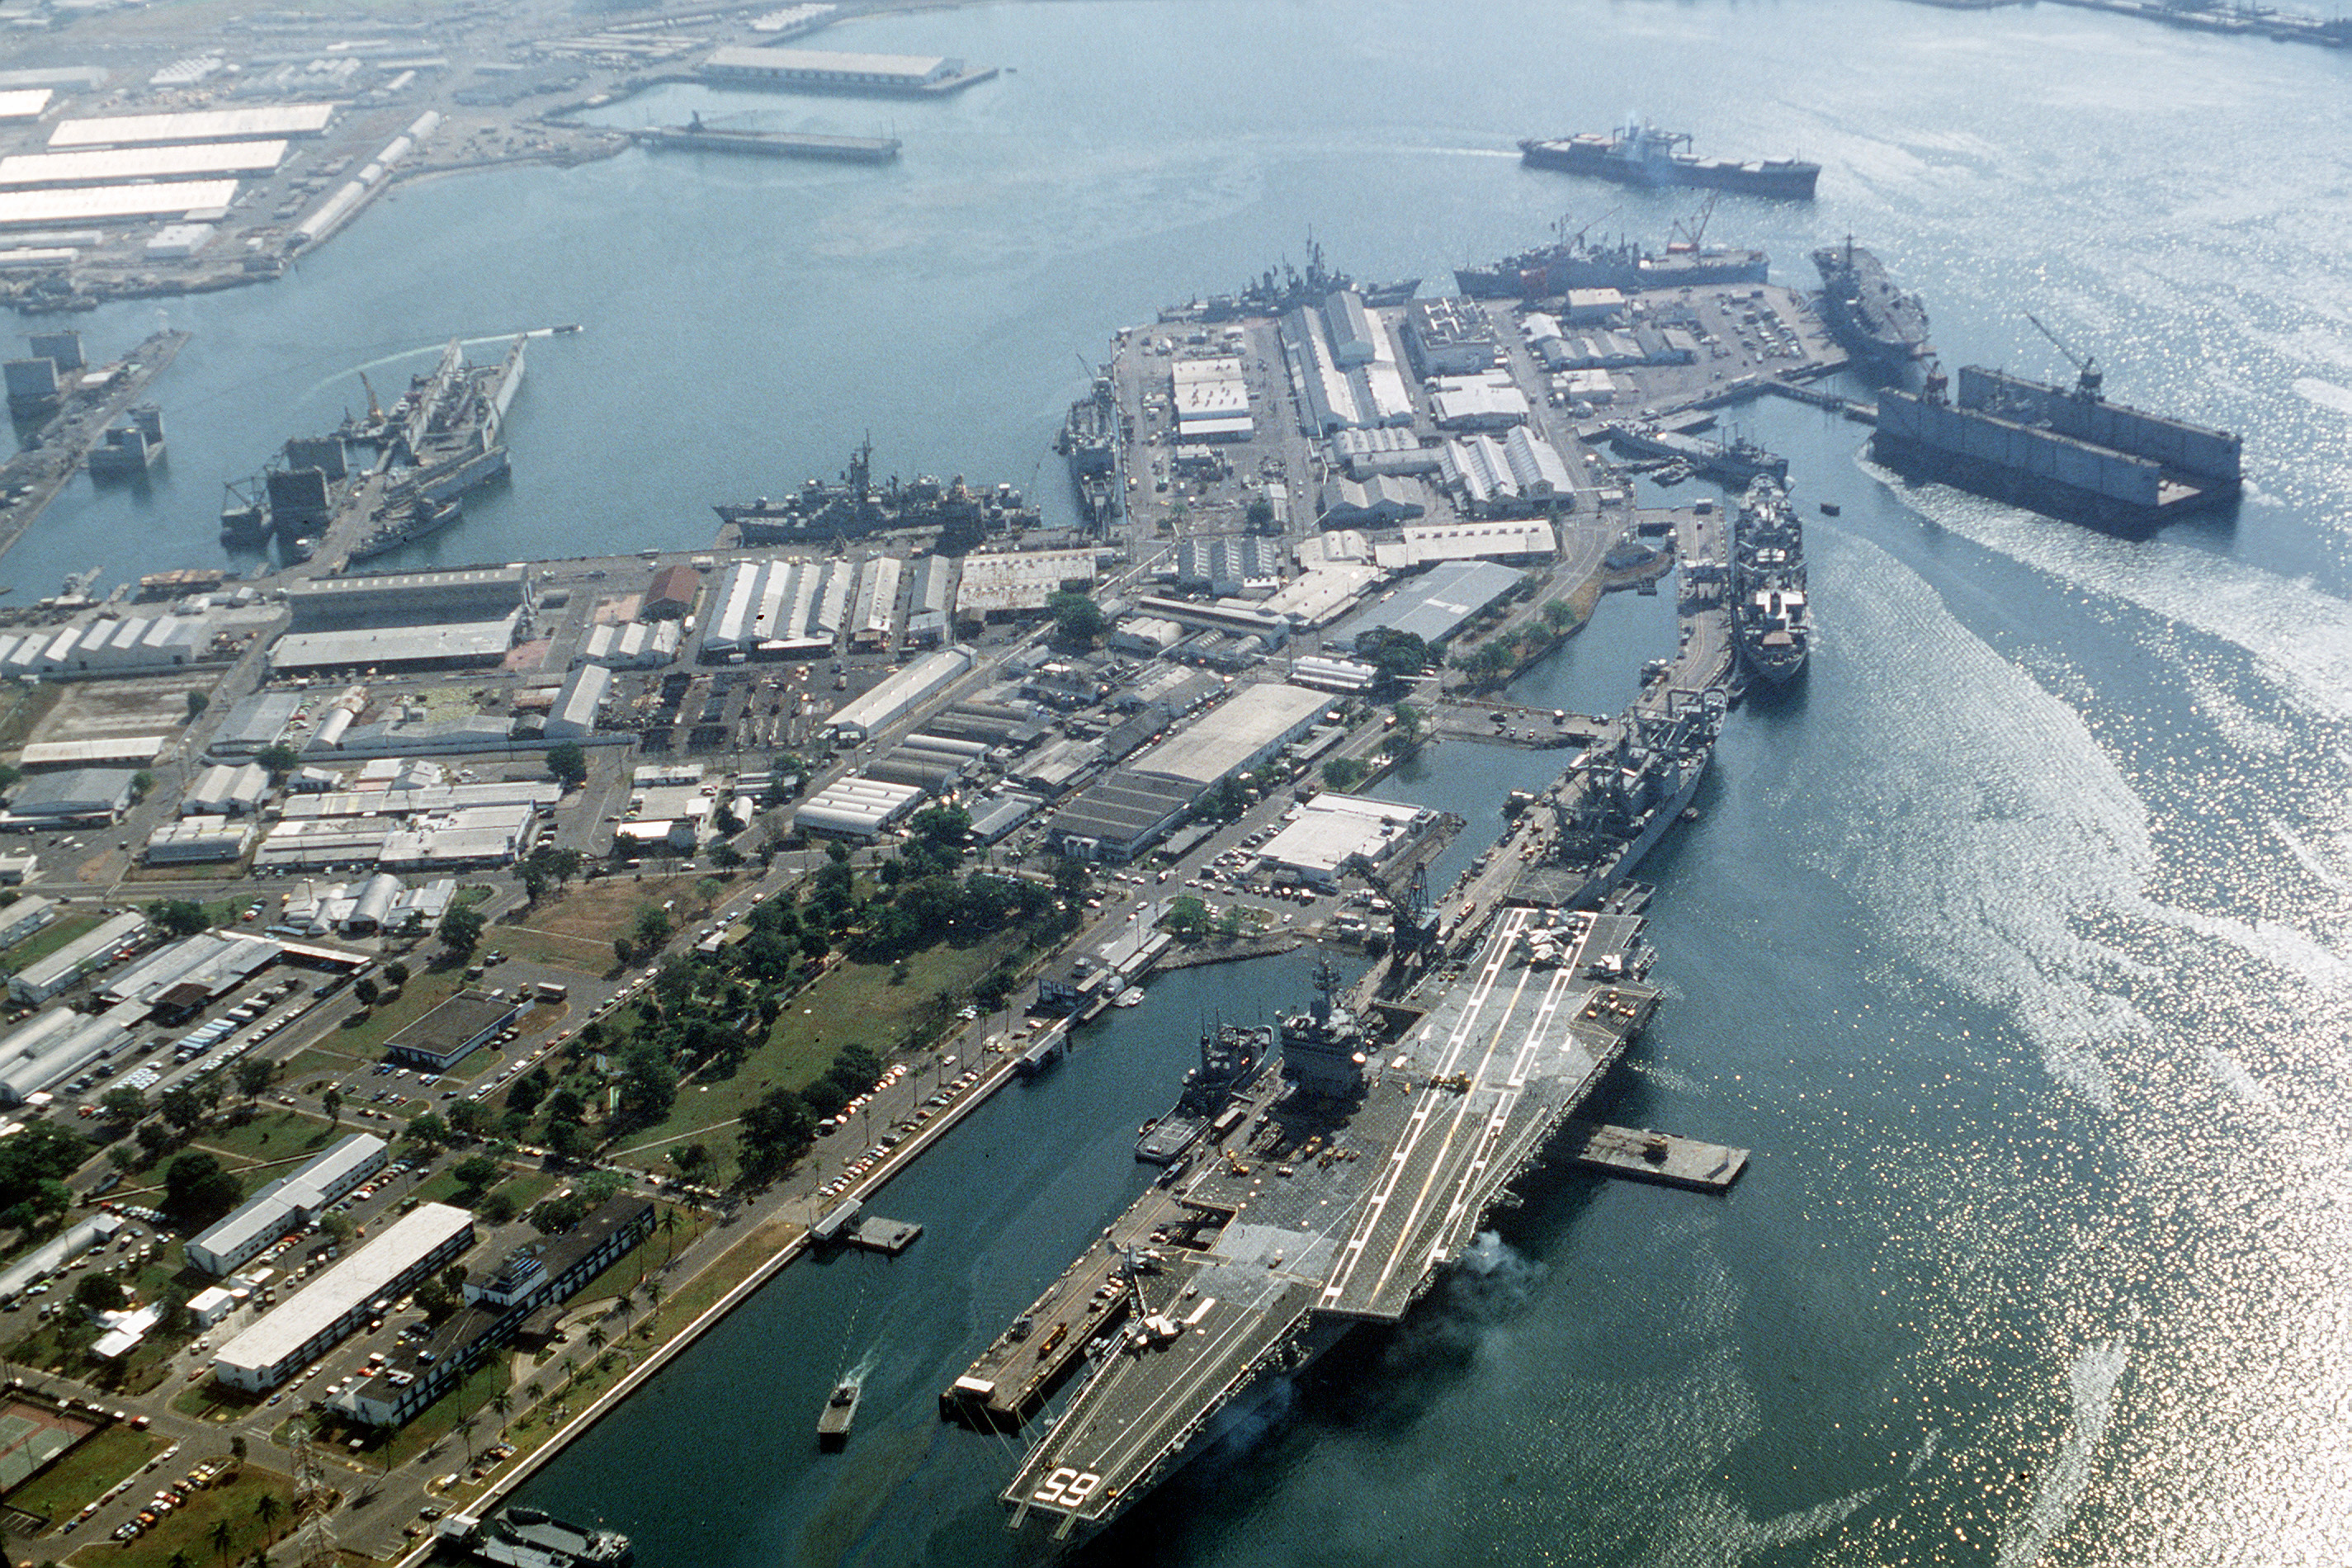 An aerial view of ships moored at the station. The nuclear-powered aircraft carrier USS ENTERPRISE (CVN-65) is in the foreground. (Vern Rowe)